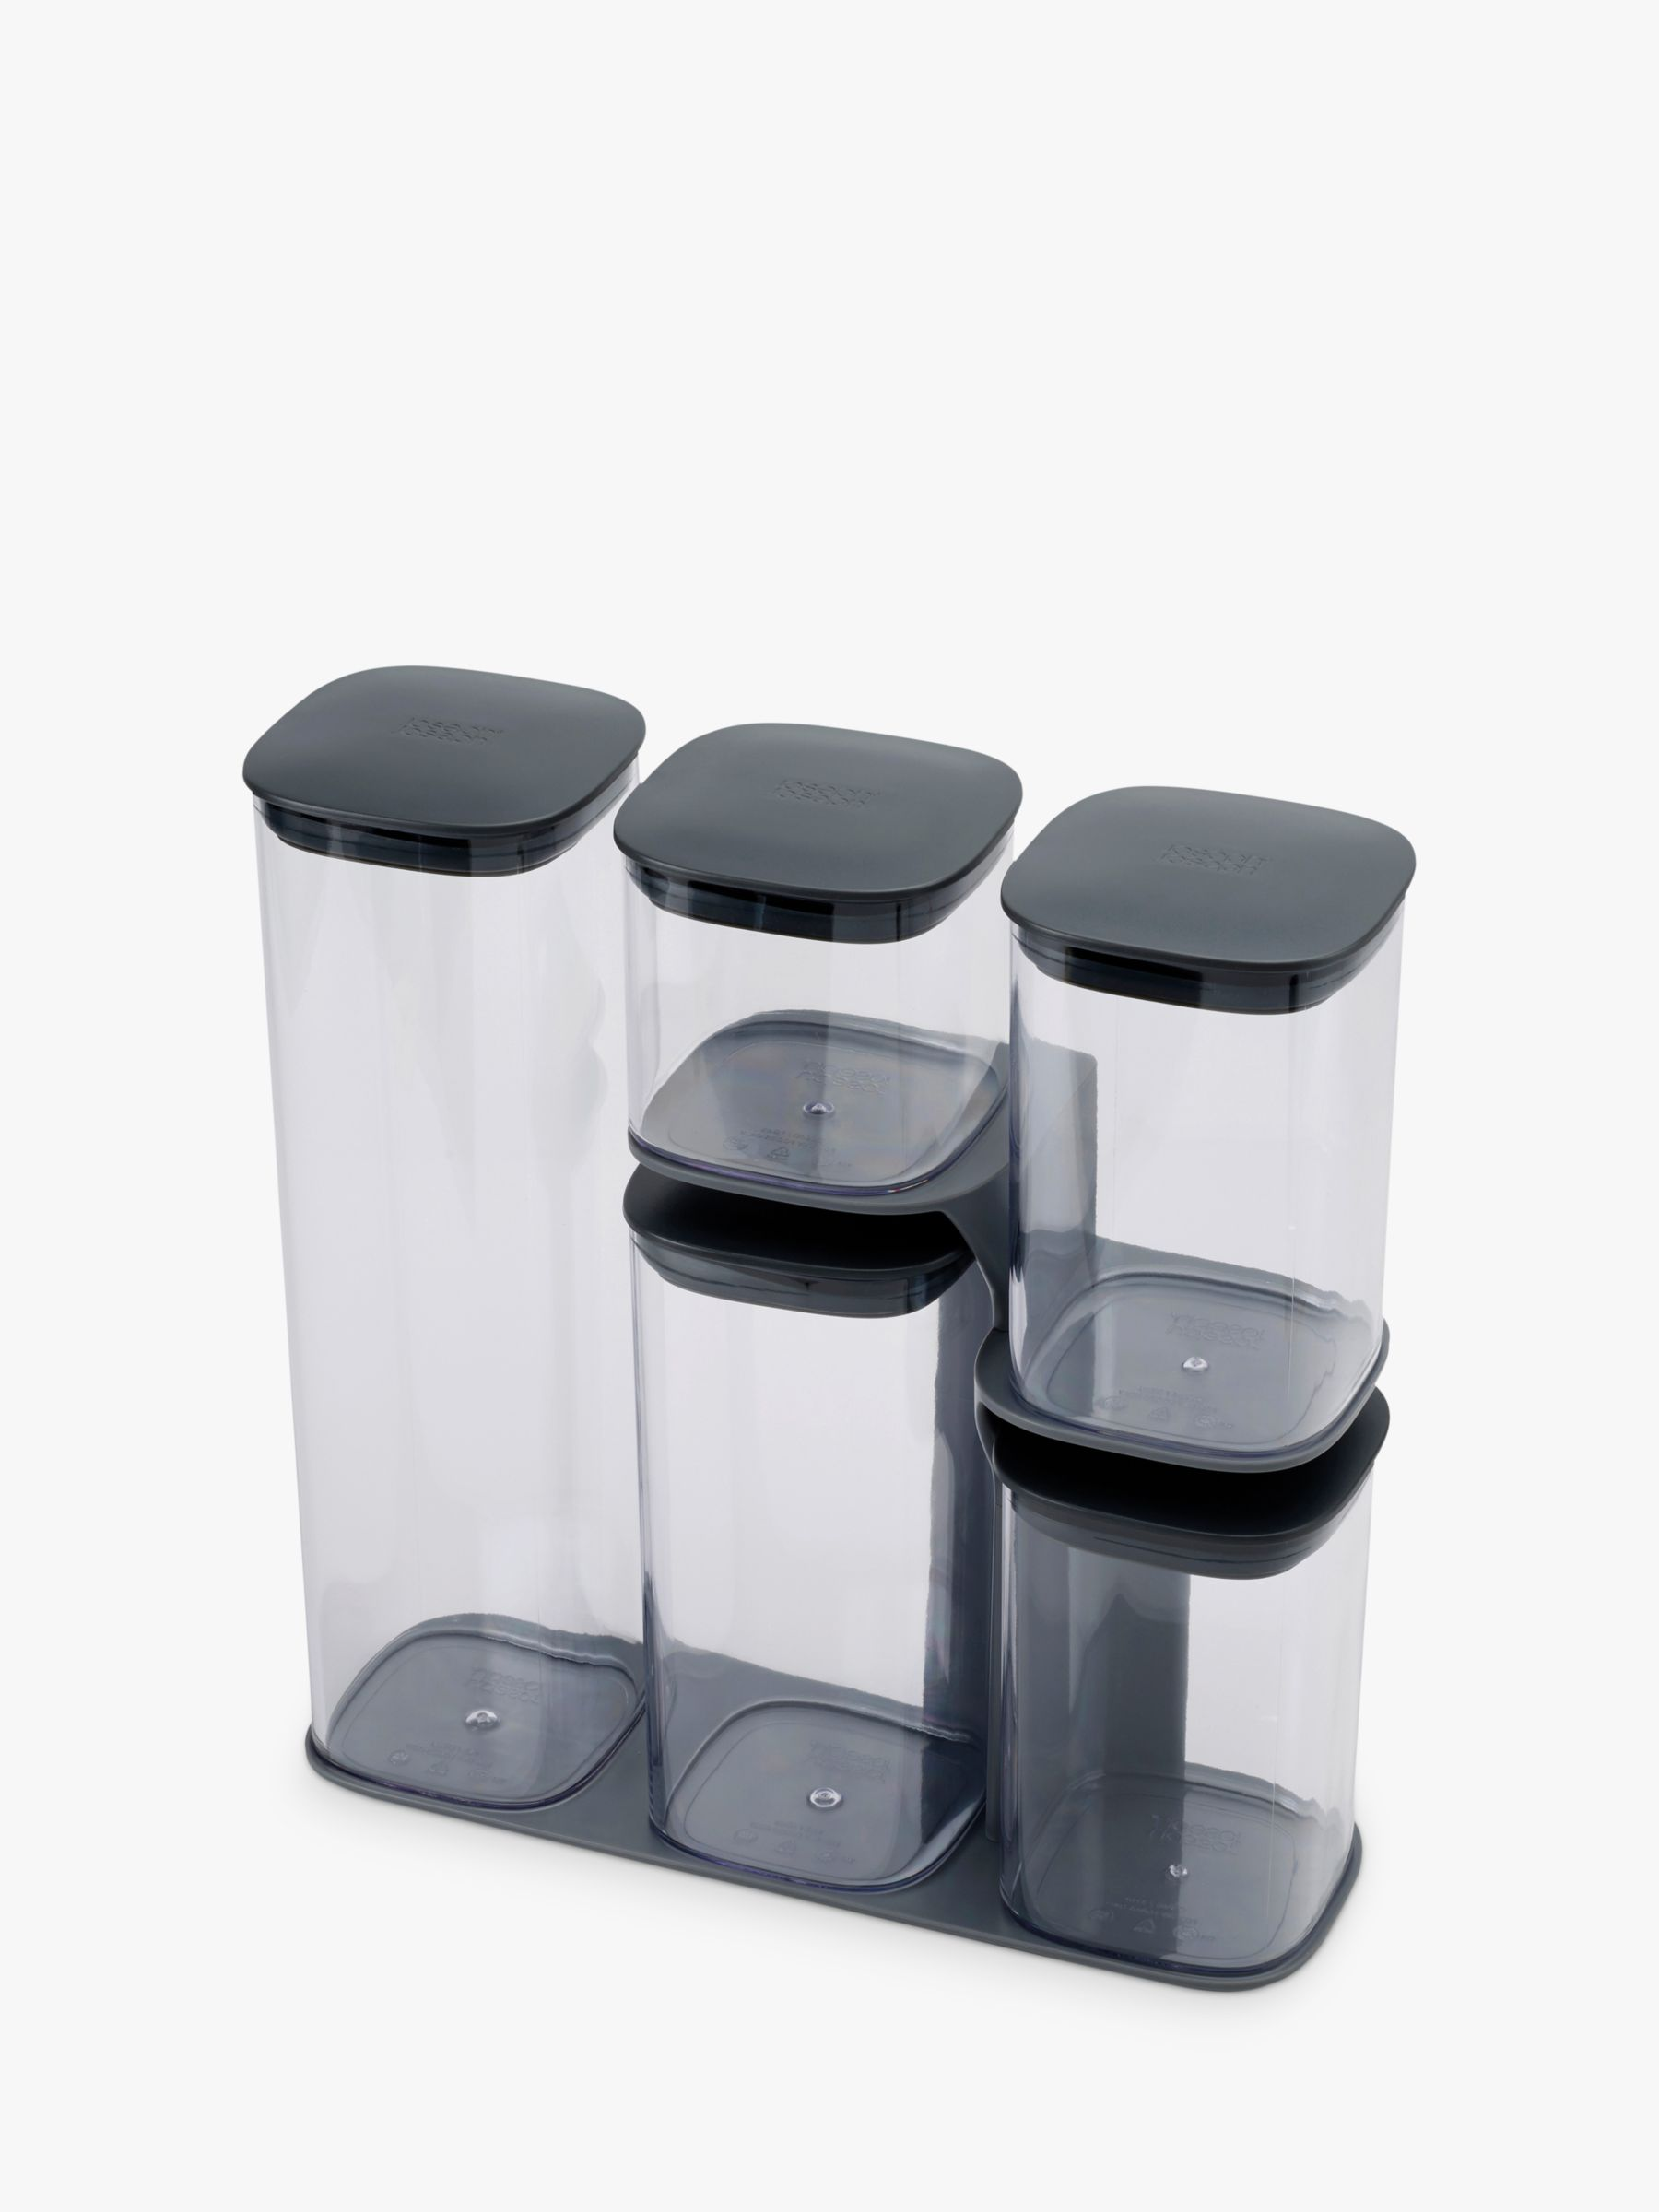 Joseph Joseph Joseph Joseph Podium Storage Container Set and Stand, 5 Pieces